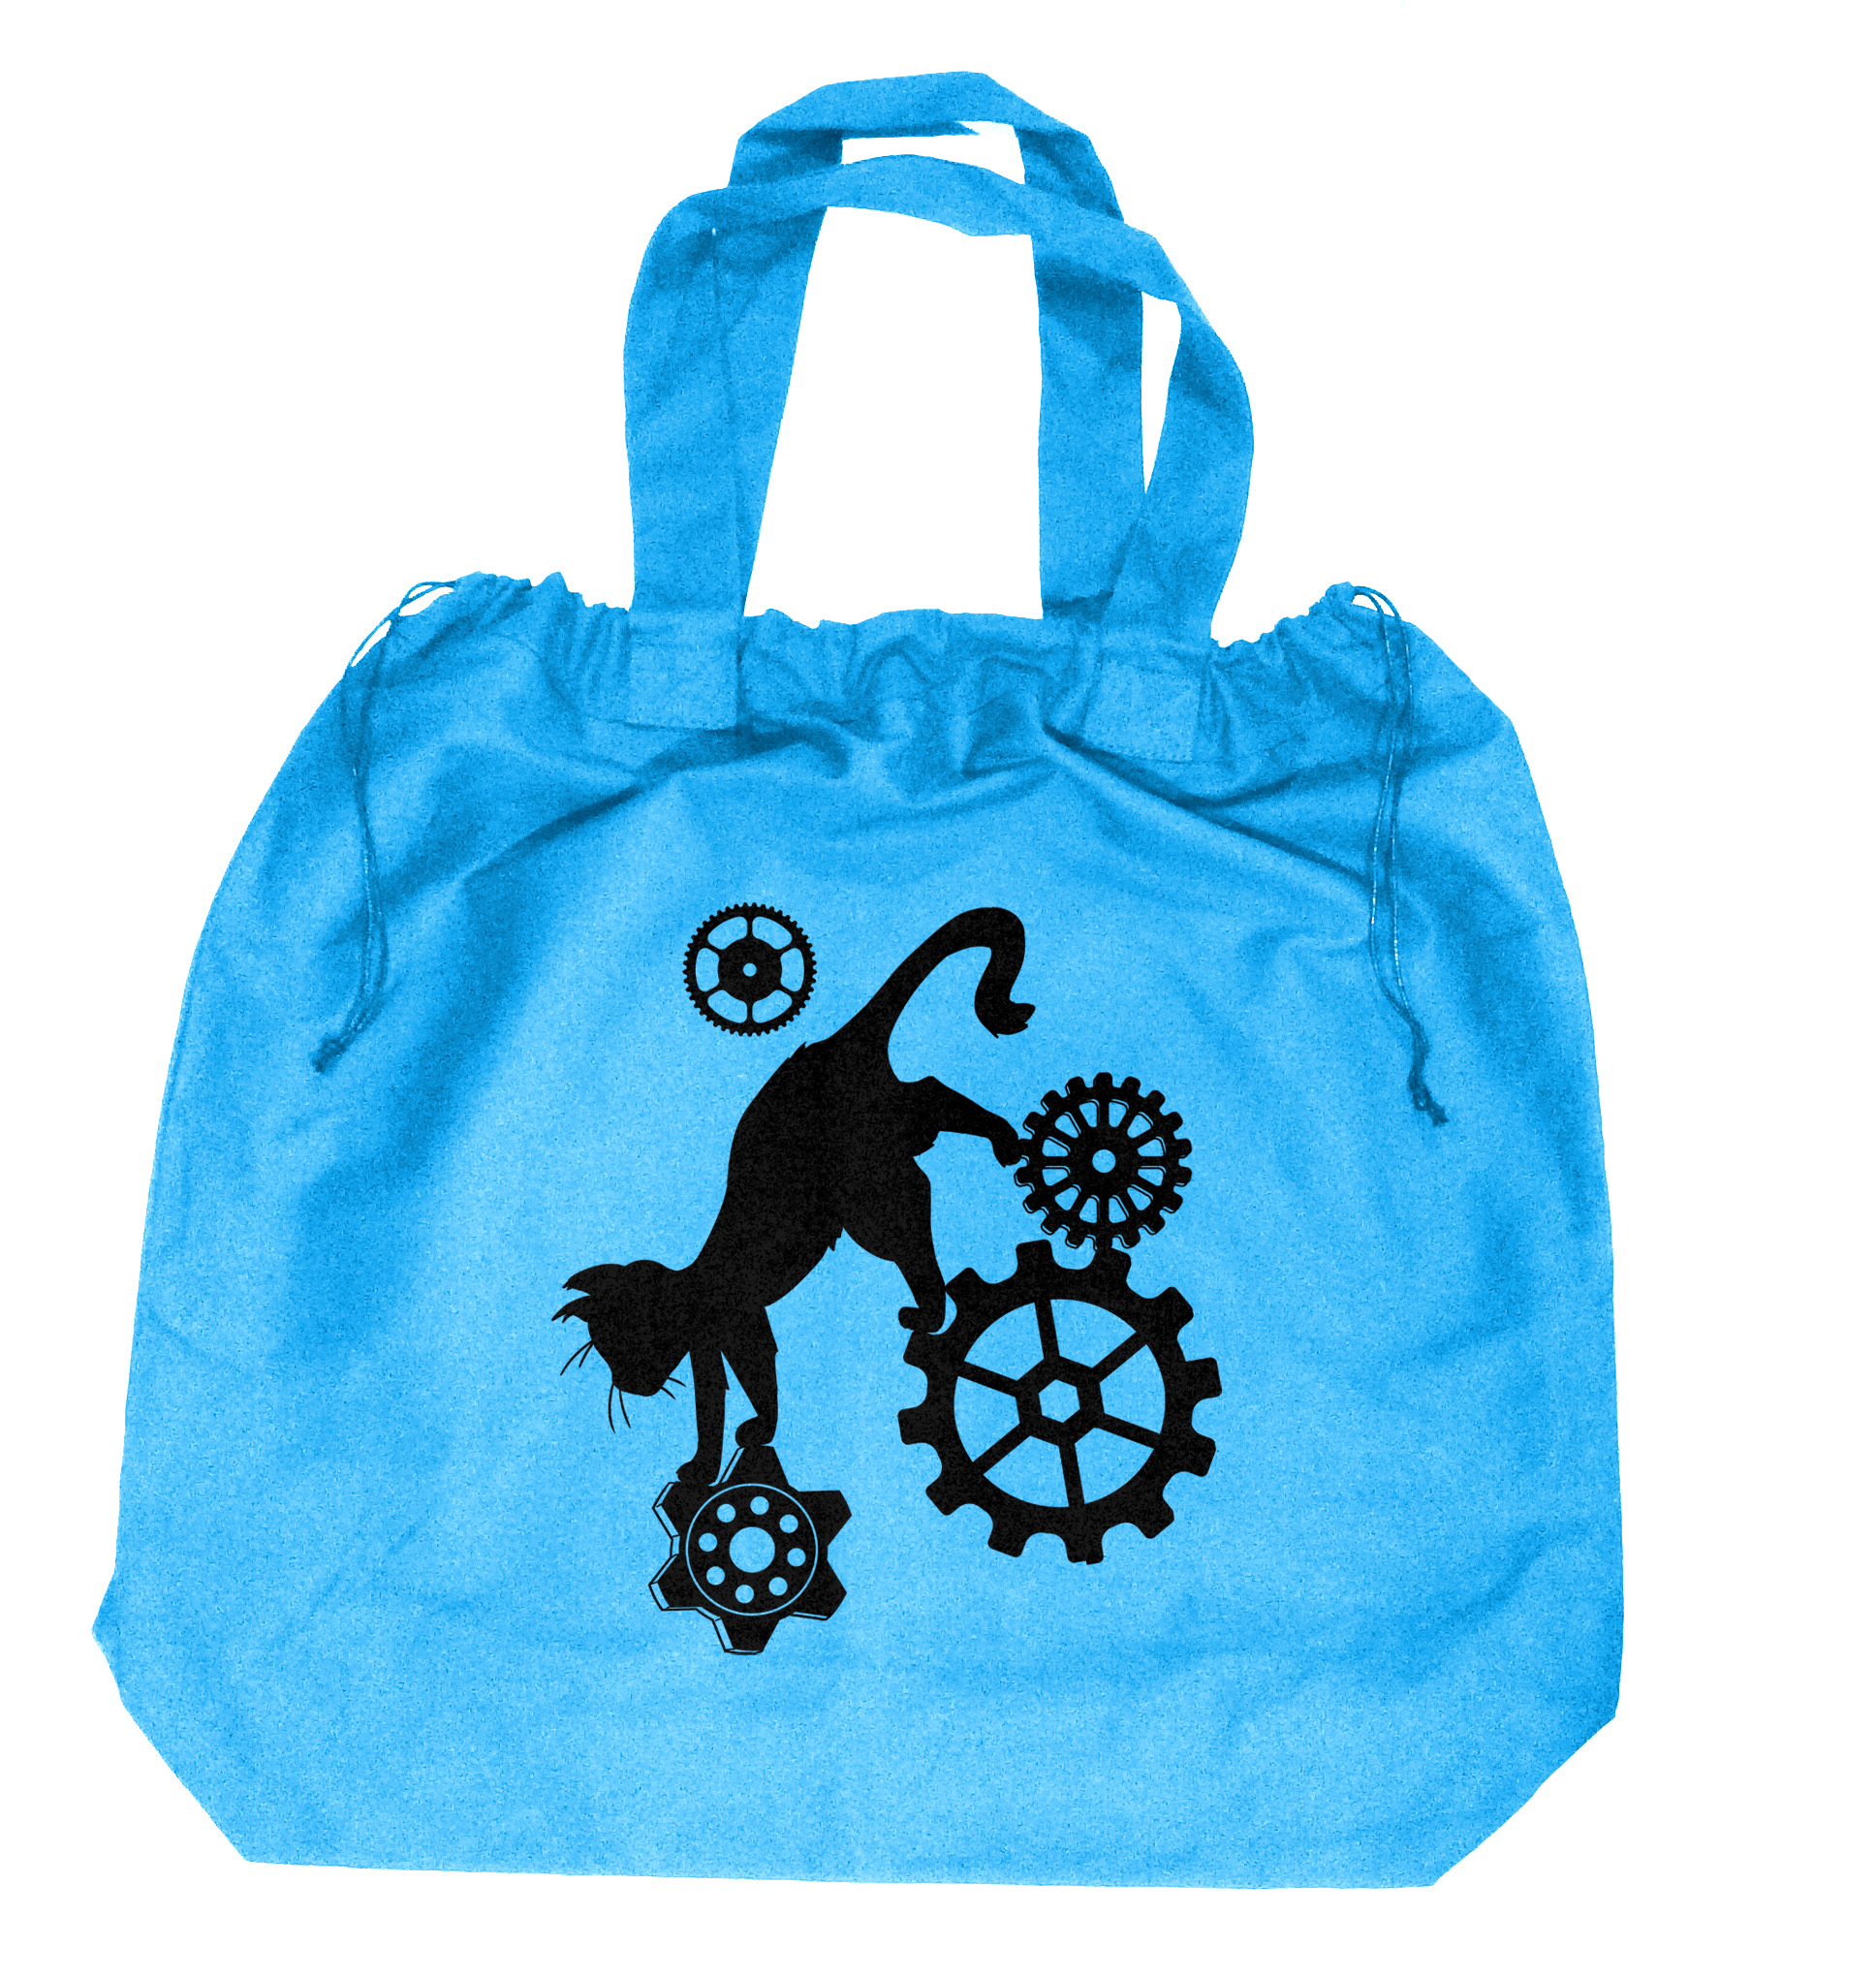 Steampunk Cat Extra-Large Drawstring Beach Bag - Aqua Blue